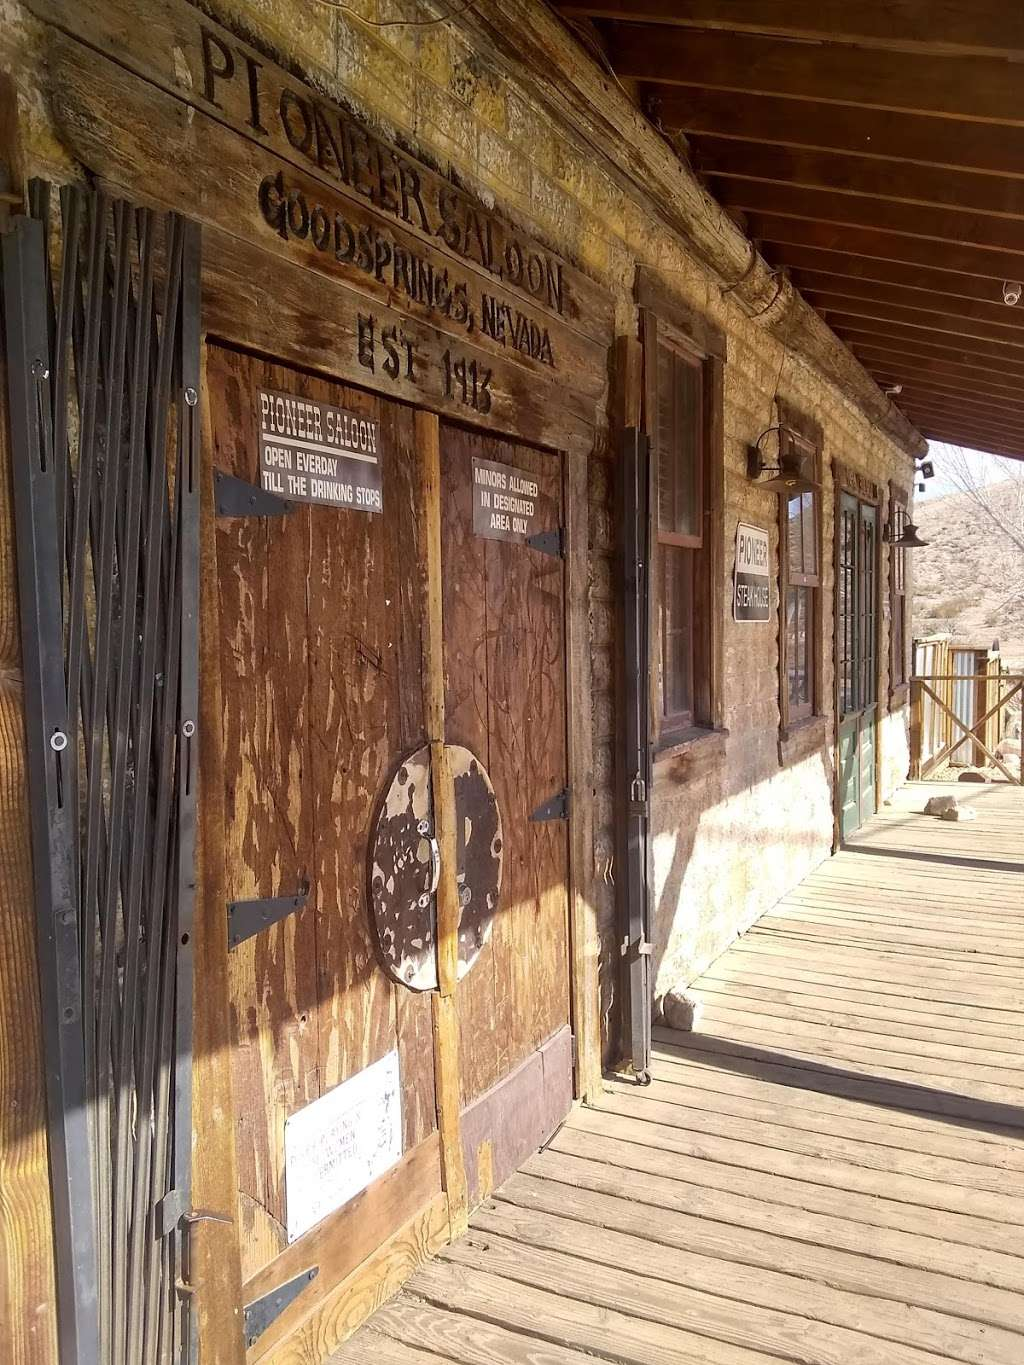 Good Springs General Store - store  | Photo 9 of 10 | Address: NV-161, Goodsprings, NV 89019, USA